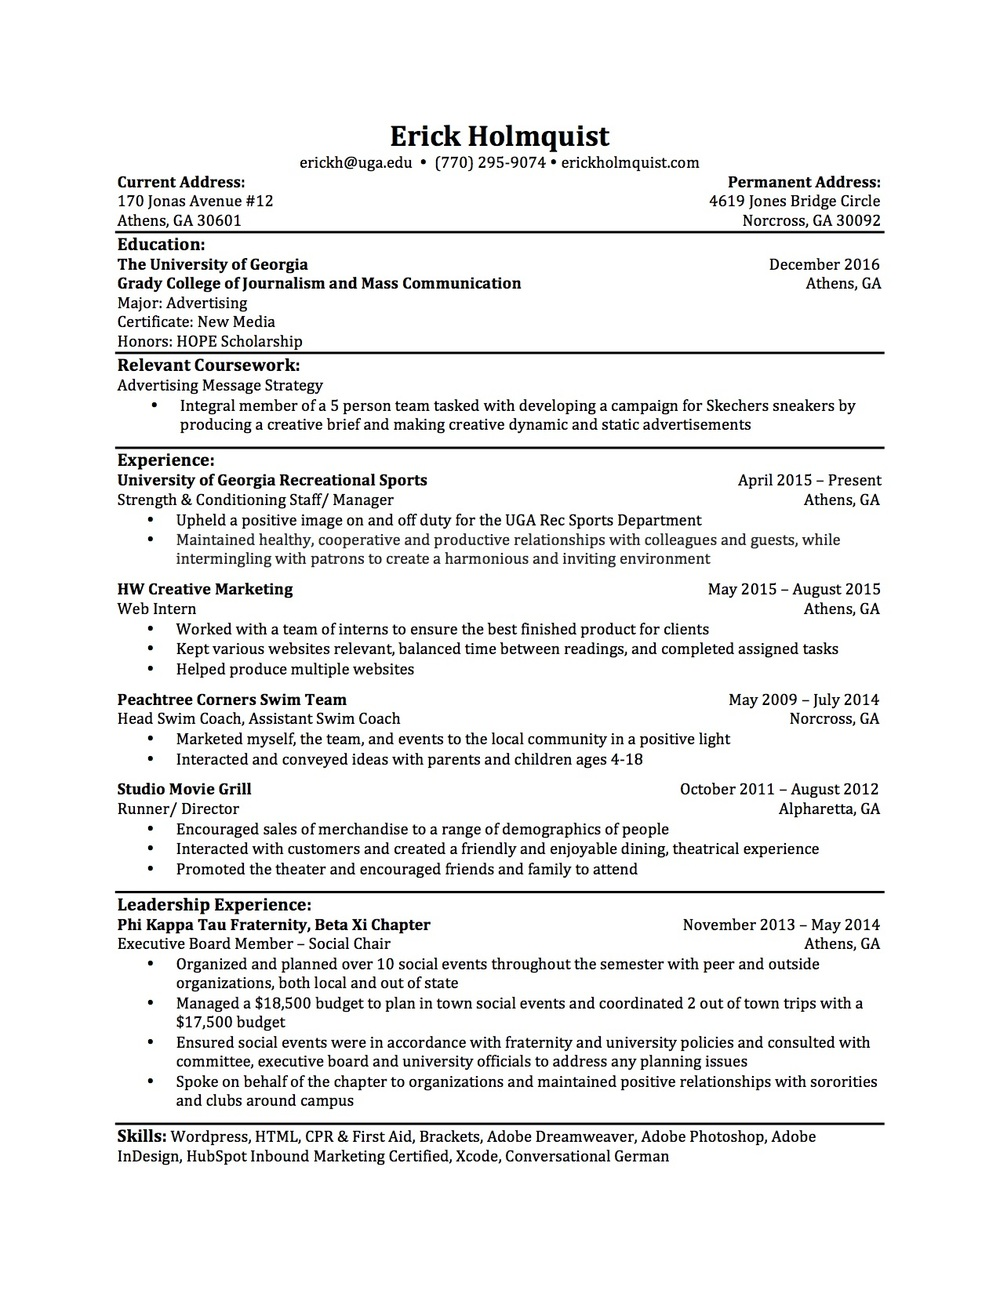 Acting Resume No Experience Template Http Topresume Info Acting Resume No  Experience Template Latest Resume Pinterest